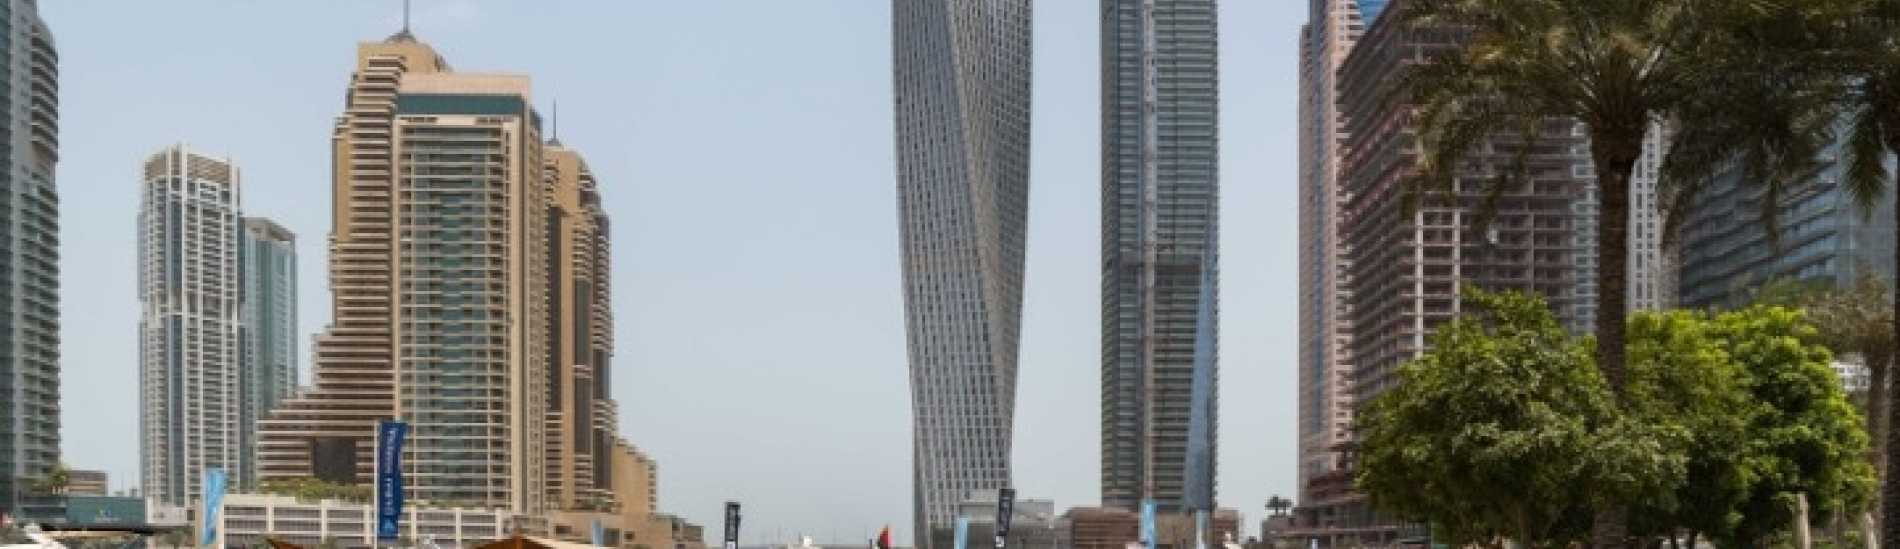 Tallest Residential Towers in Dubai Marina